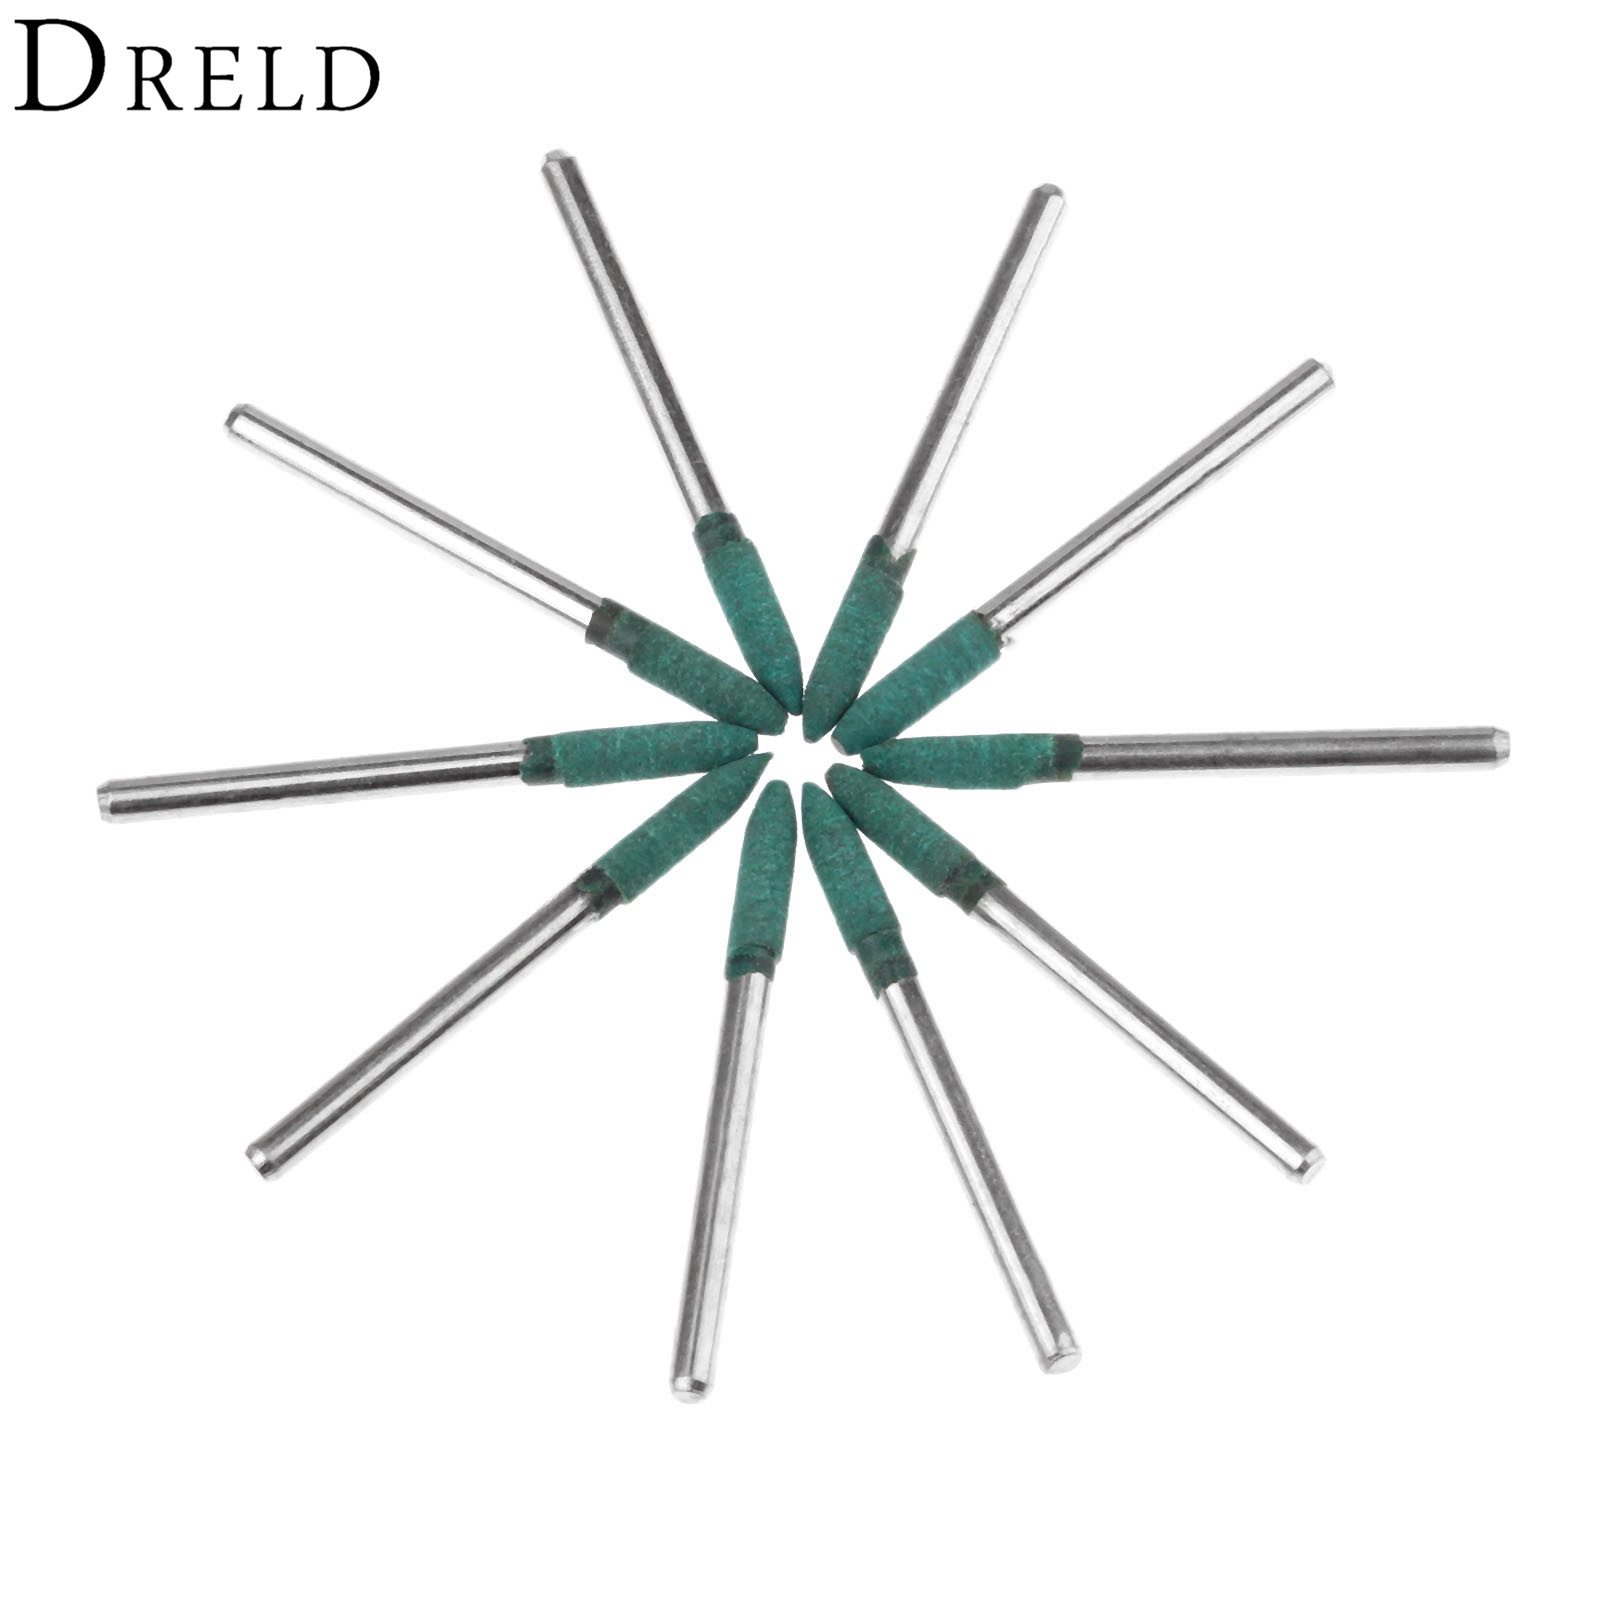 DRELD 10Pcs Dremel Accessories 4mm Rubber Grinding Head Metal Surface Mould Buffing Polishing Wheel For Rotary Tool 3mm Shank